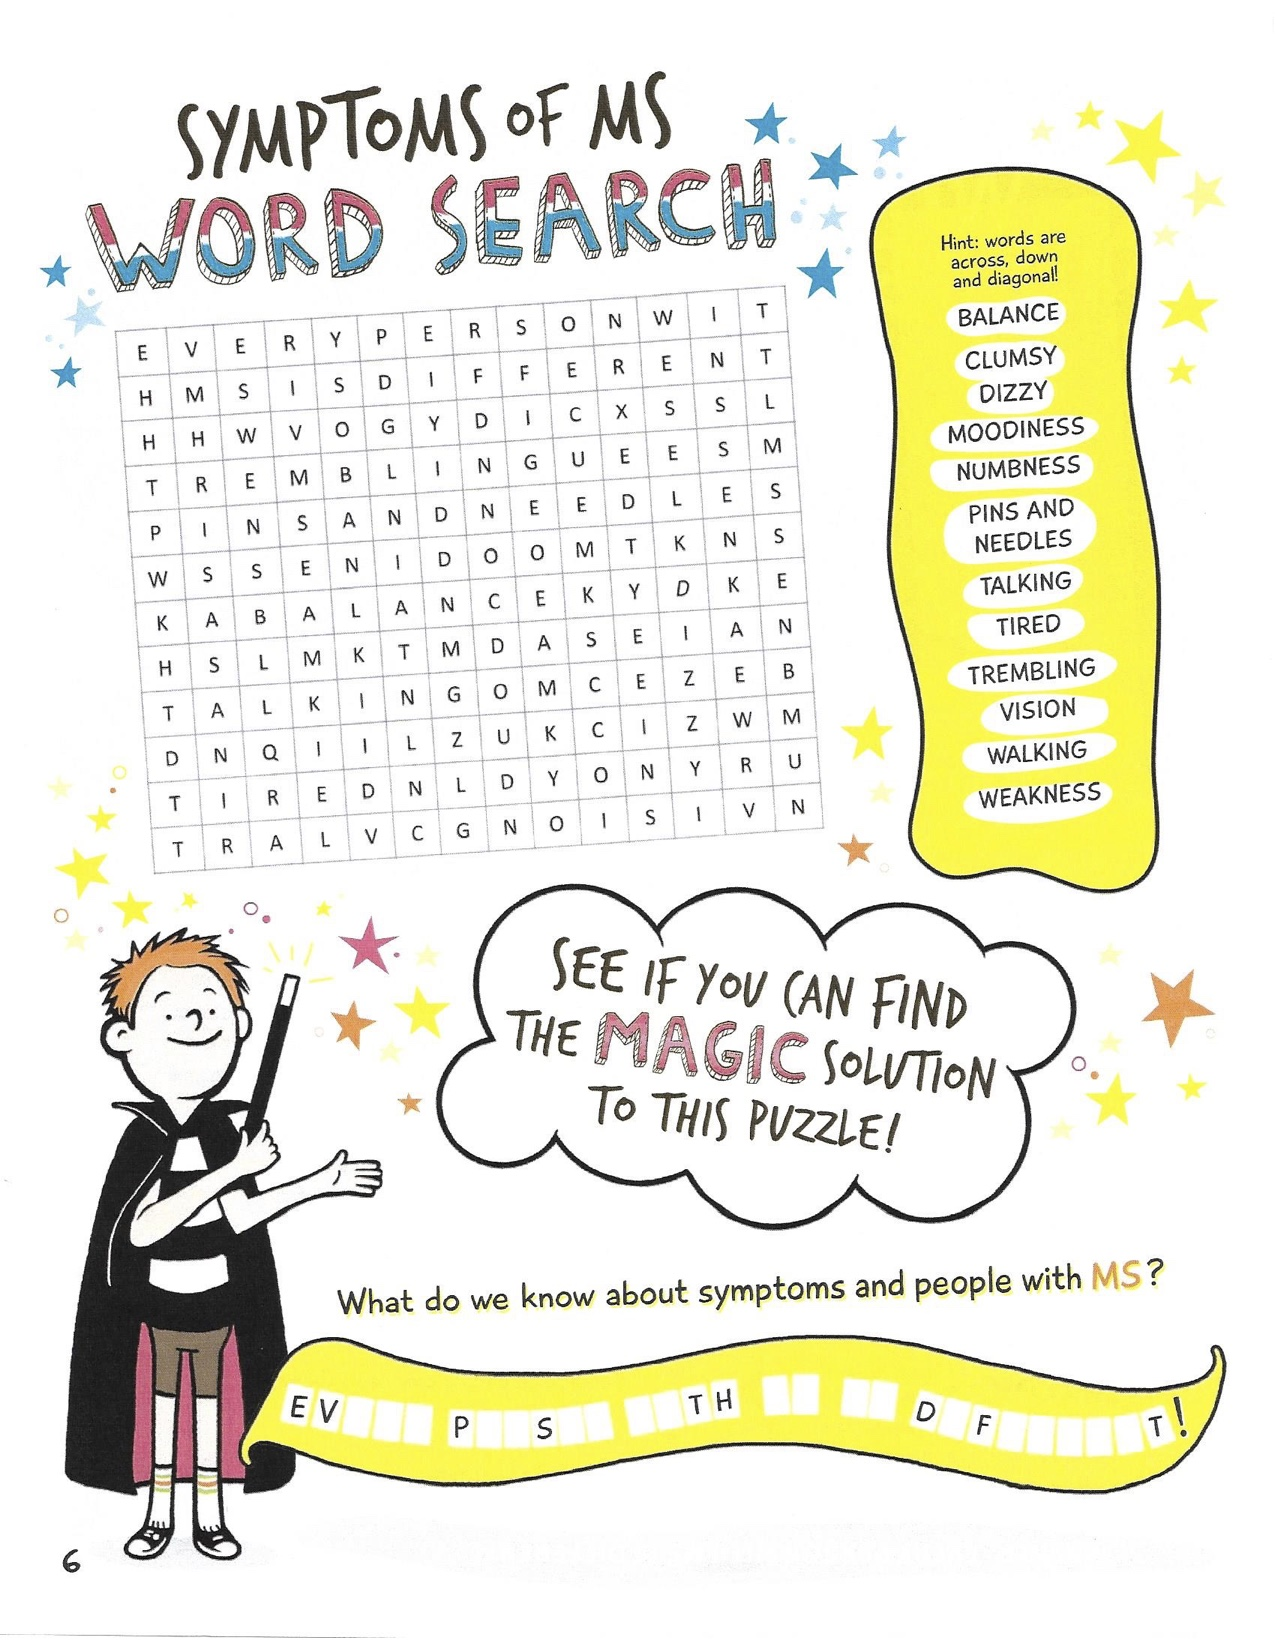 Symptoms of MS Word Search.jpg